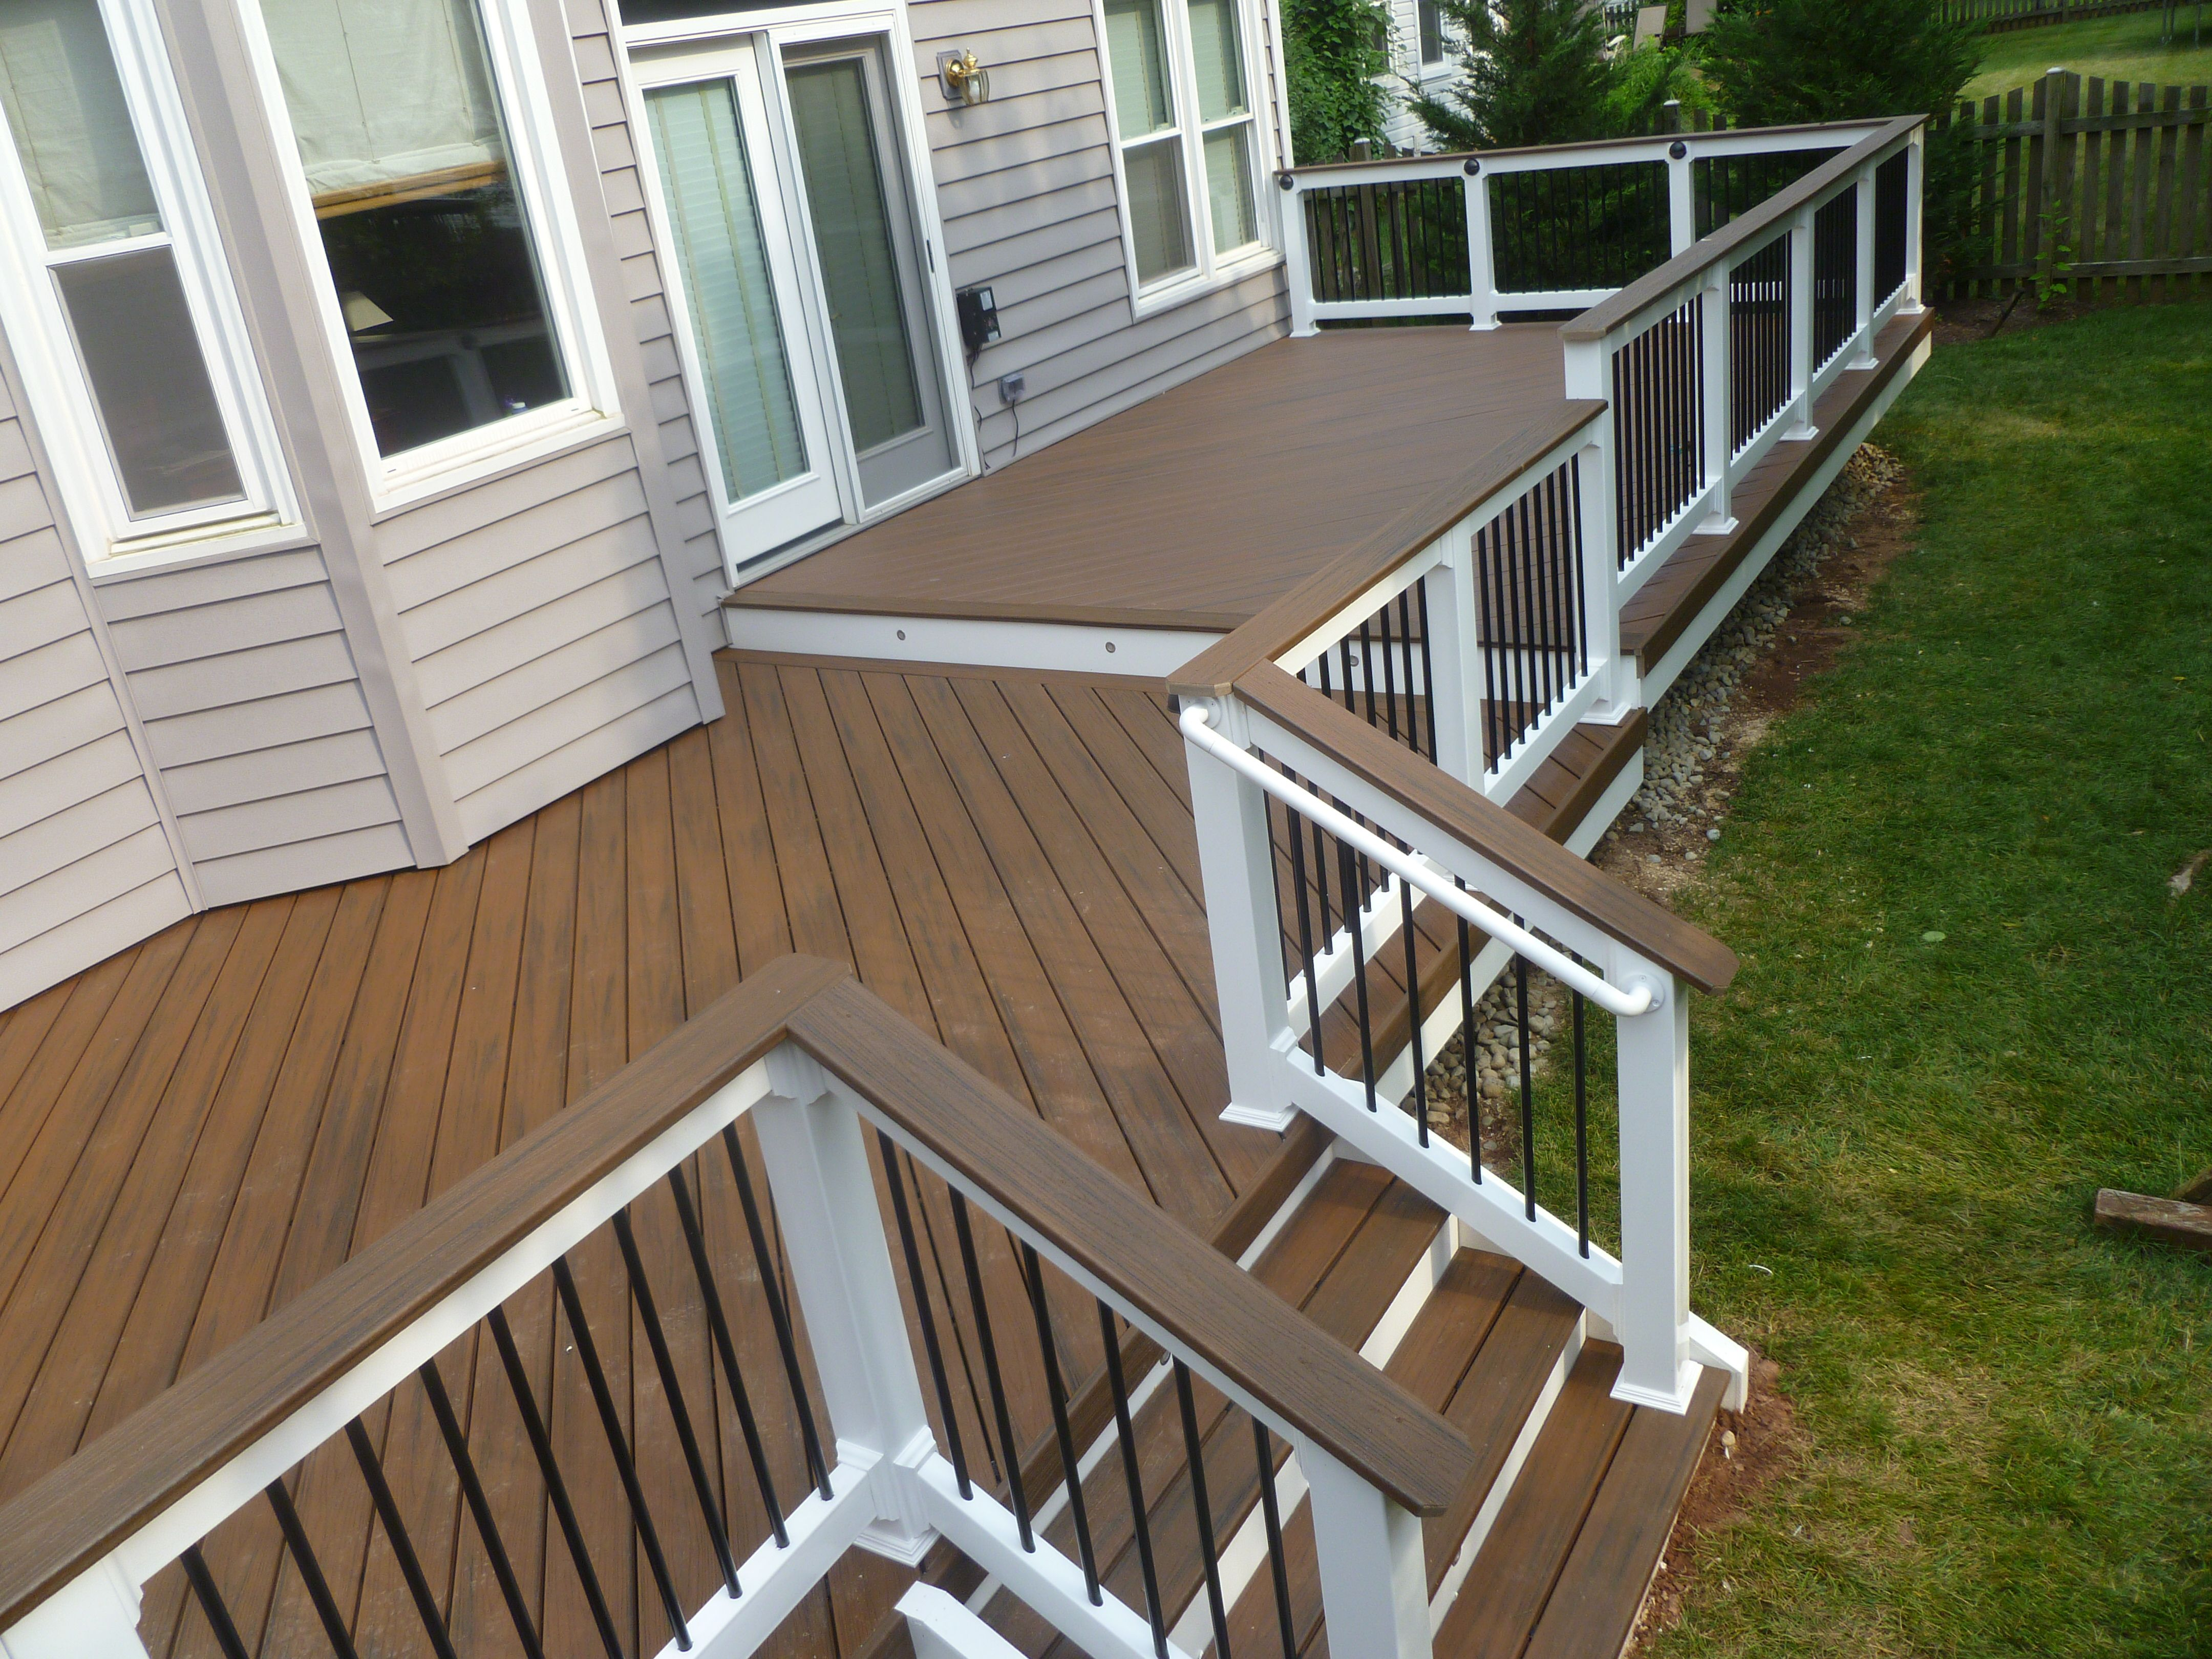 Exterior design interesting azek decking for deck ideas for Outside decking material